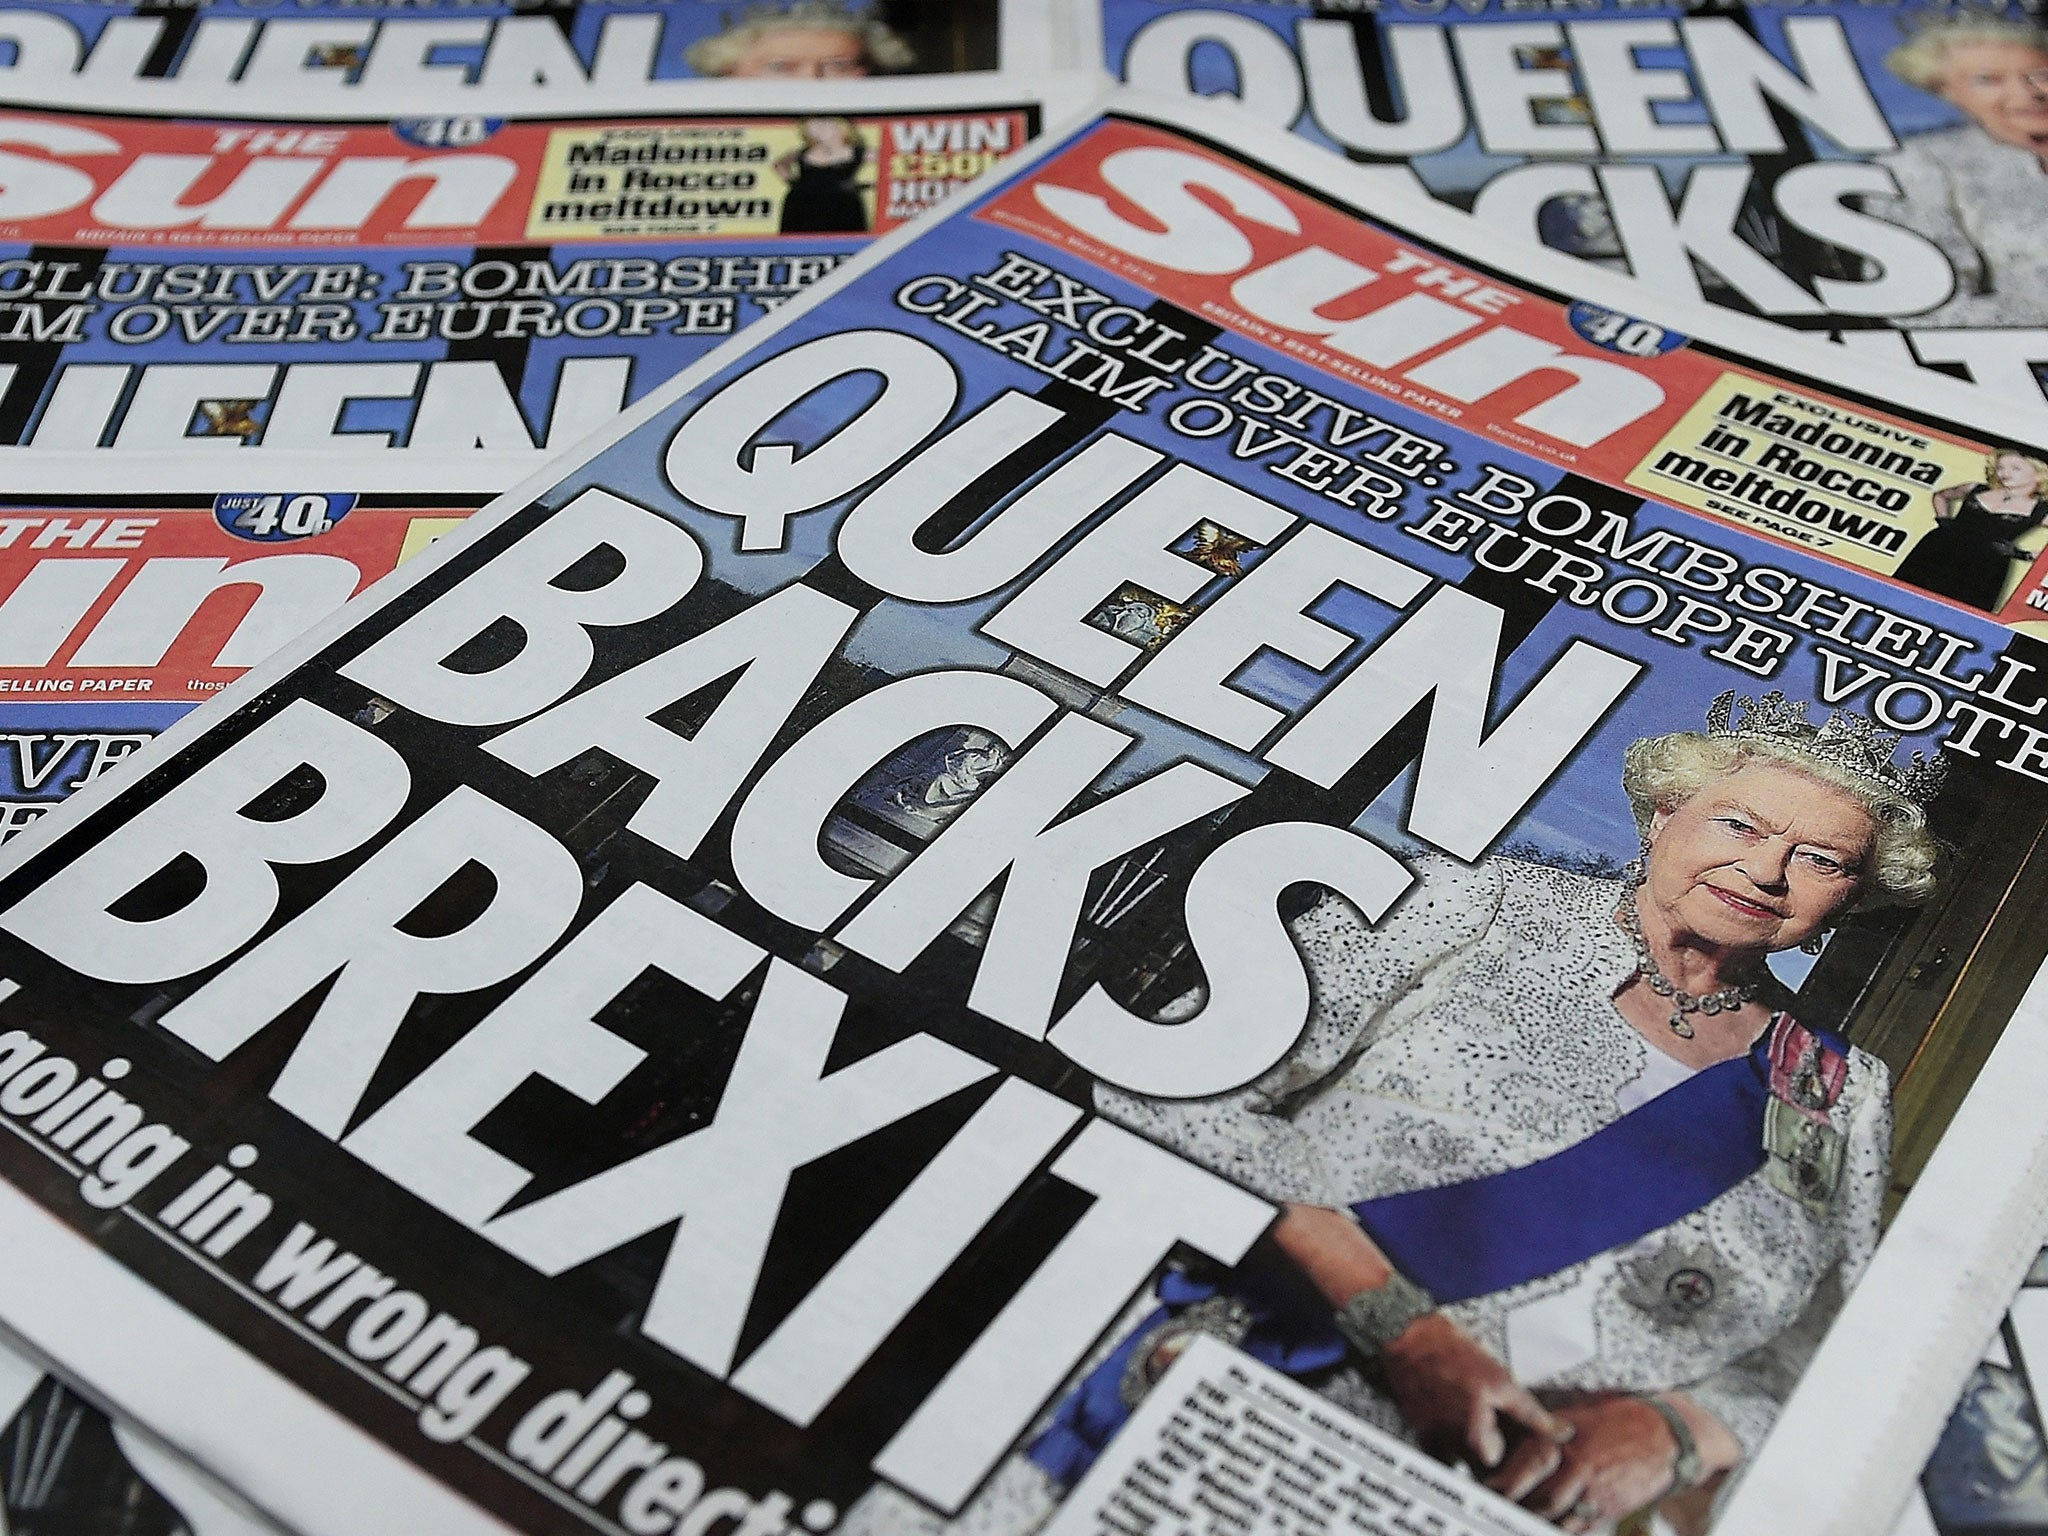 Brexit News: Why Should We Care If The Queen Backs Brexit? As Kate And